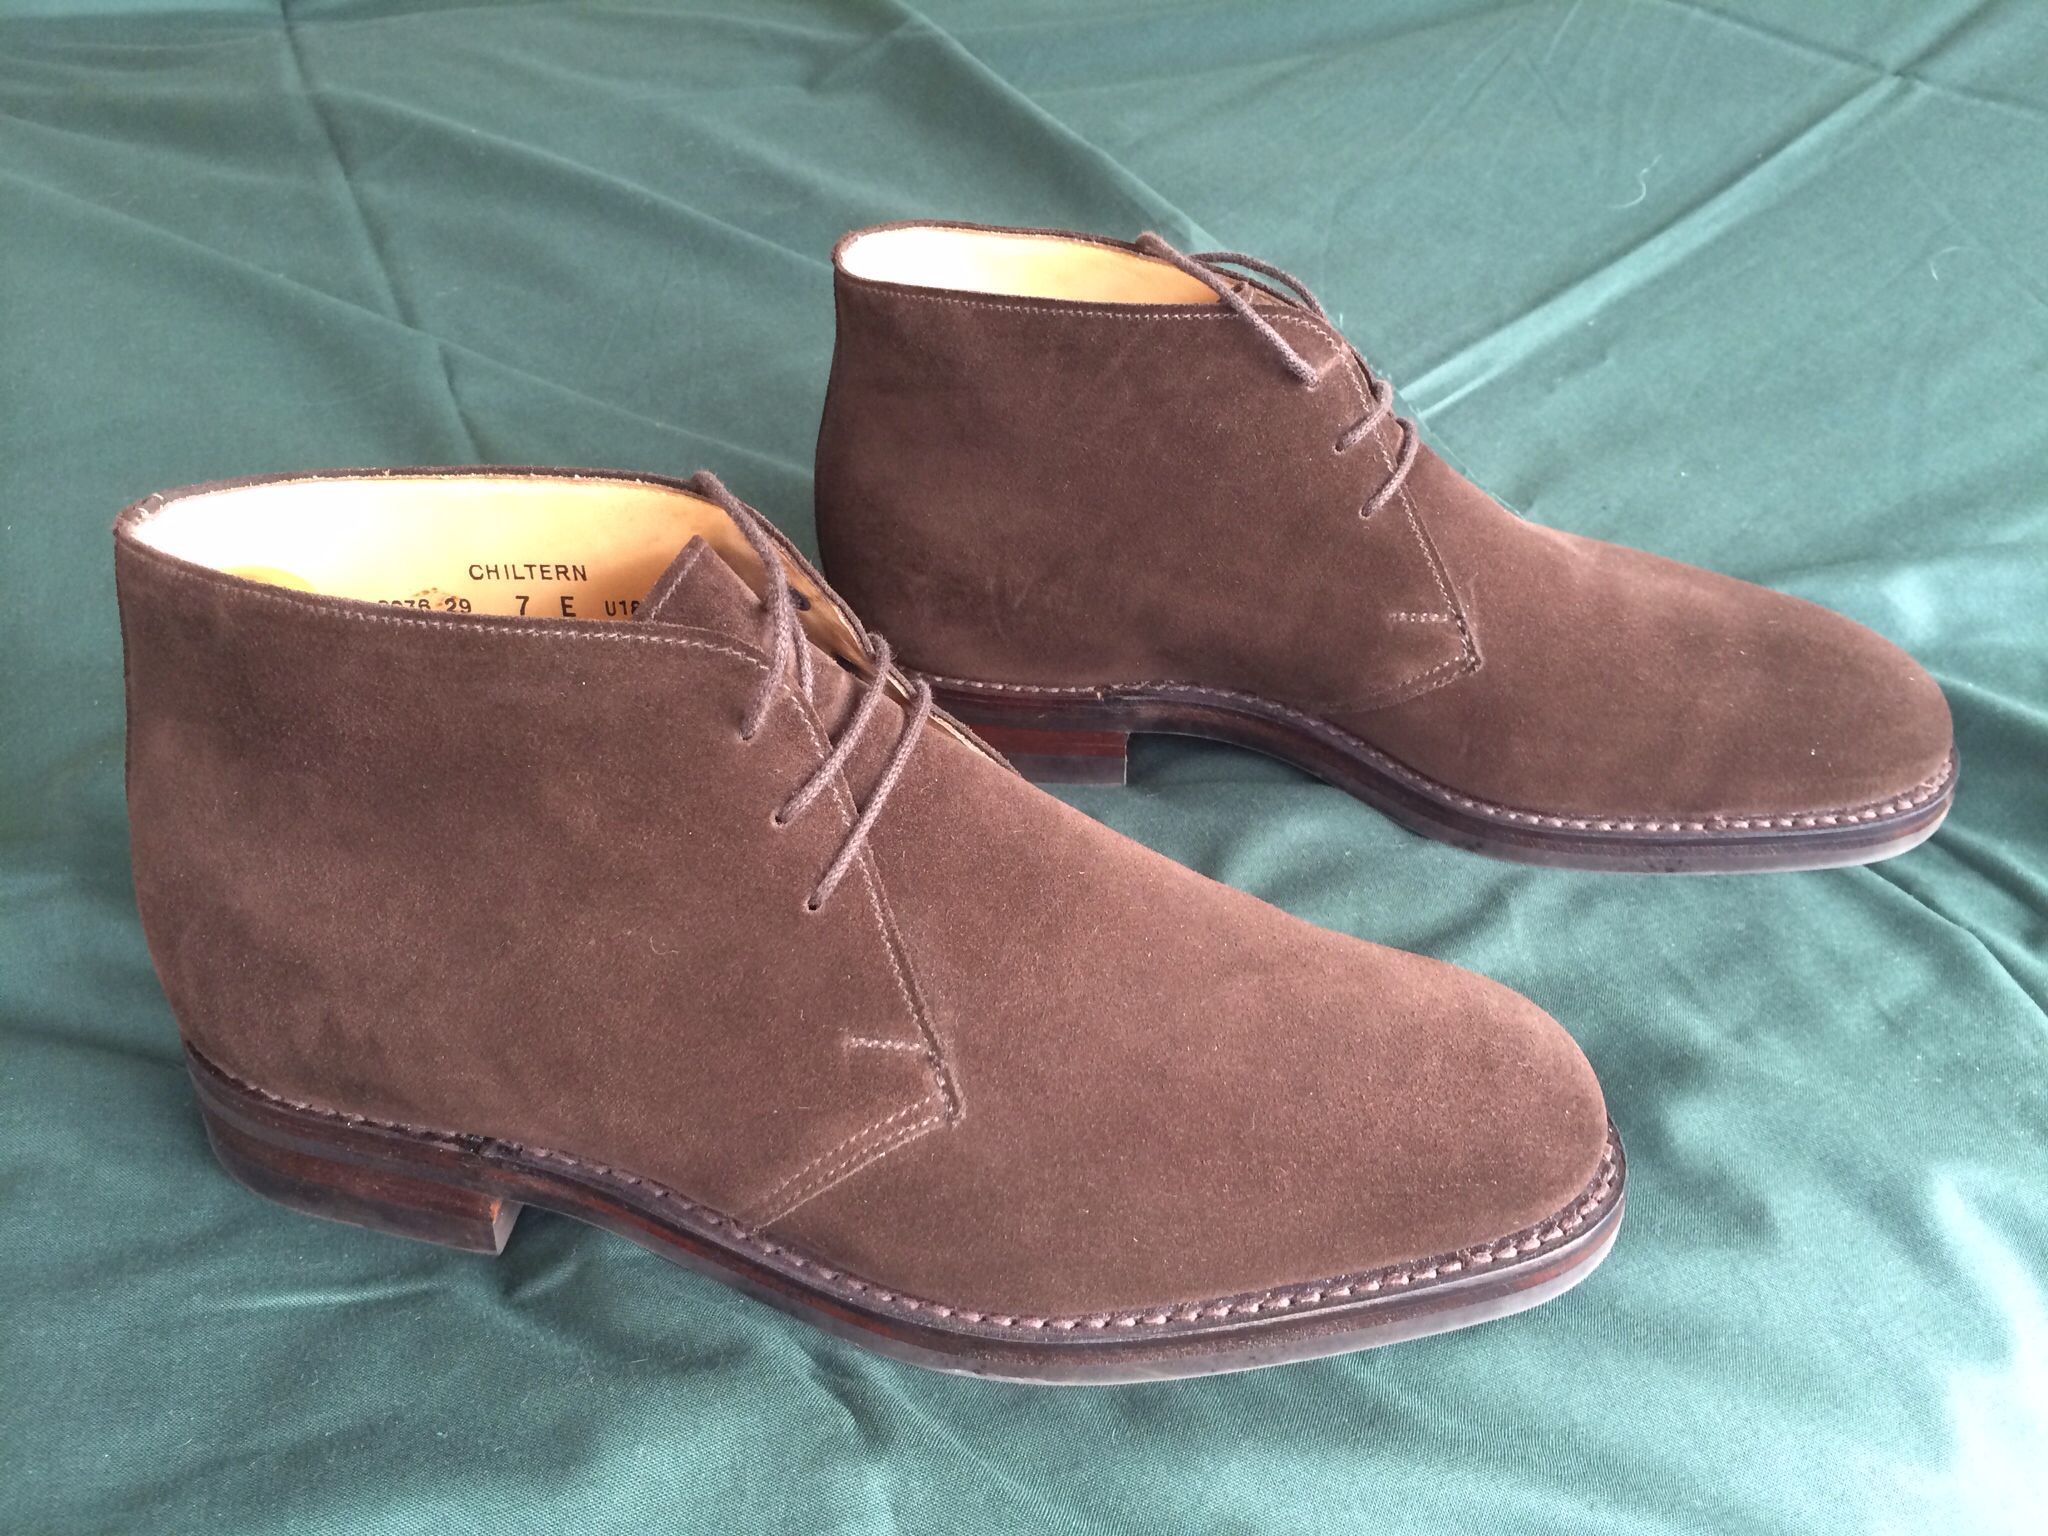 crockett and jones chiltern brown suede boots a